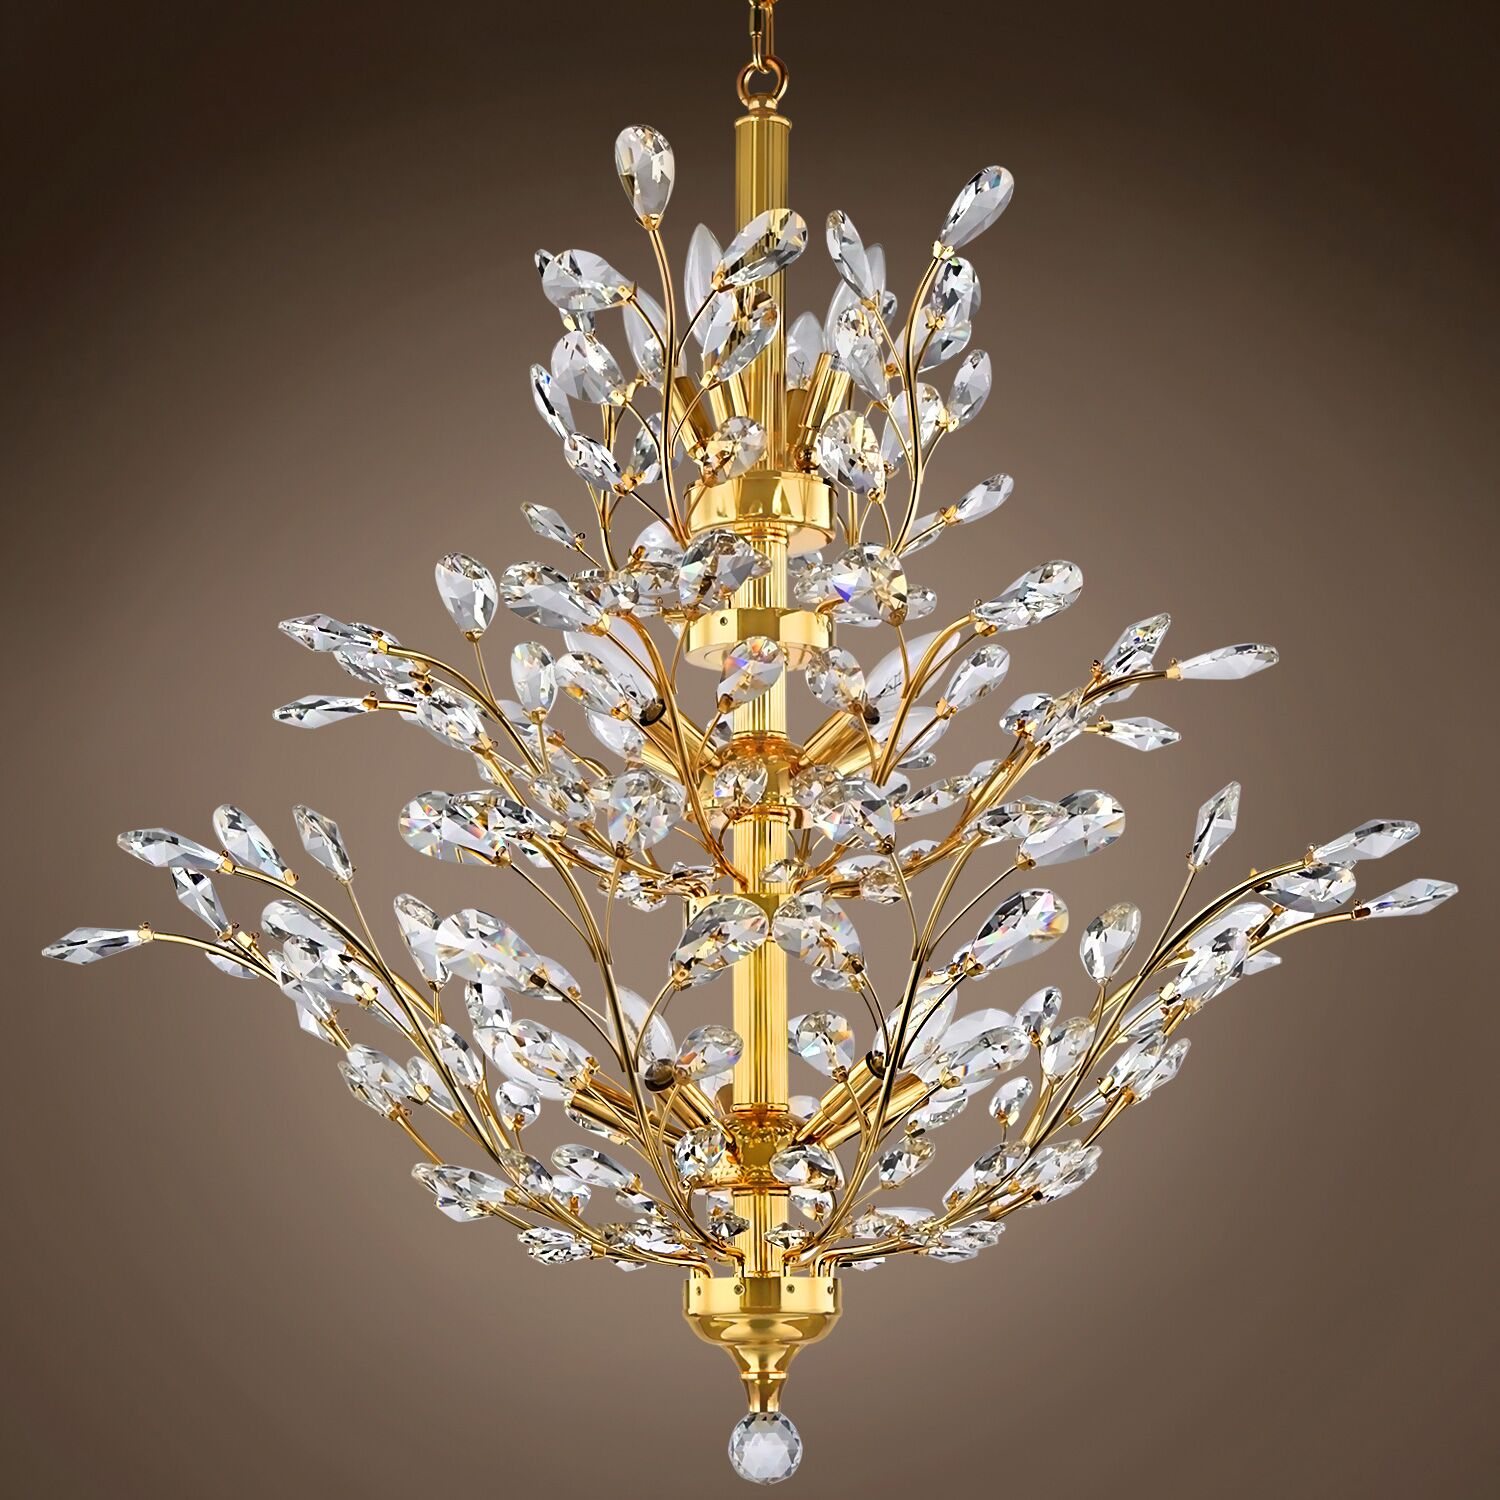 Mendez 10-Light Candle Style Chandelier Crystal Grade: European, Bulb Type: Incandescent, Crystal Color: Smoke